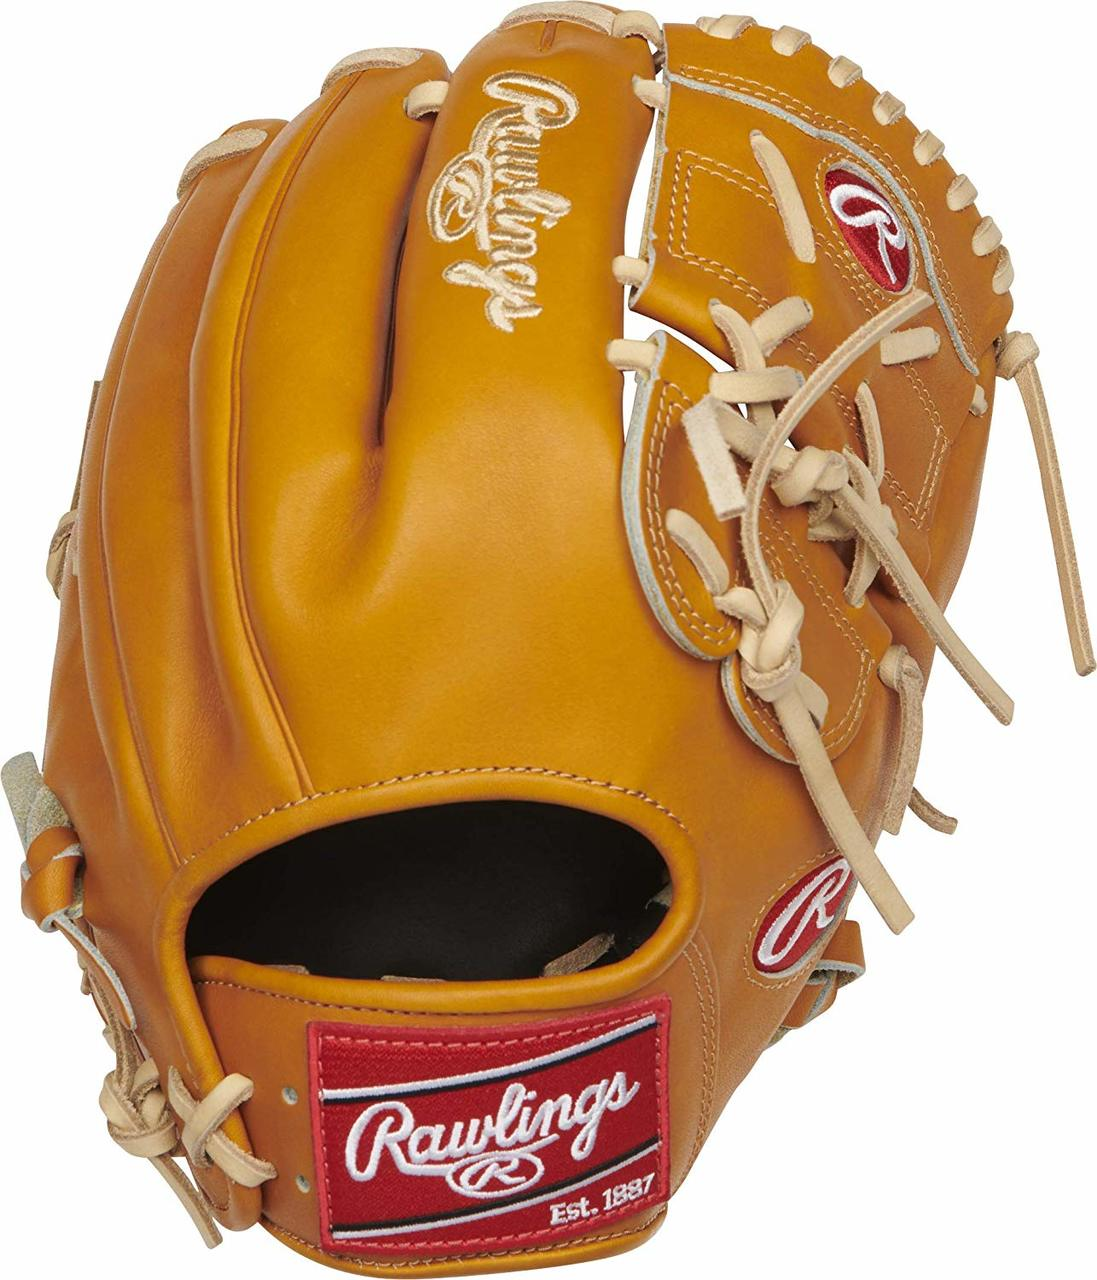 rawlings-heart-of-the-hide-206-9t-baseball-glove-12-right-hand-throw PRO206-9T-RightHandThrow Rawlings  Heart of the Hide baseball gloves are handcrafted with ultra-premium steer-hide